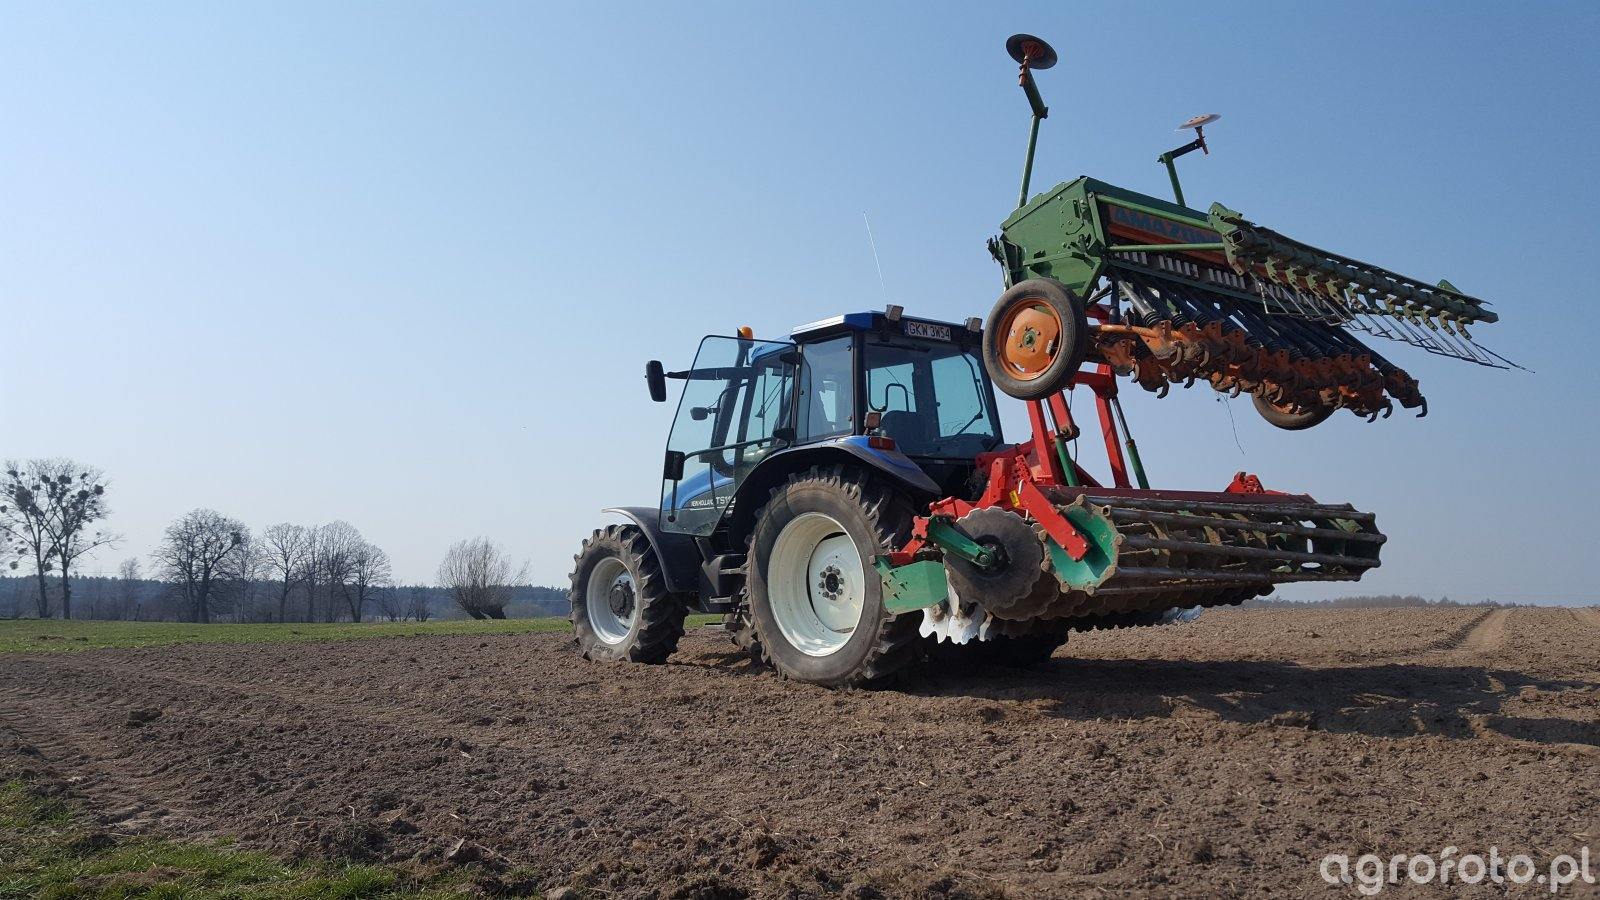 New Holland TS115 + AGROMASZ AT 3.0 + AMAZONE D8-30 SPECJAL